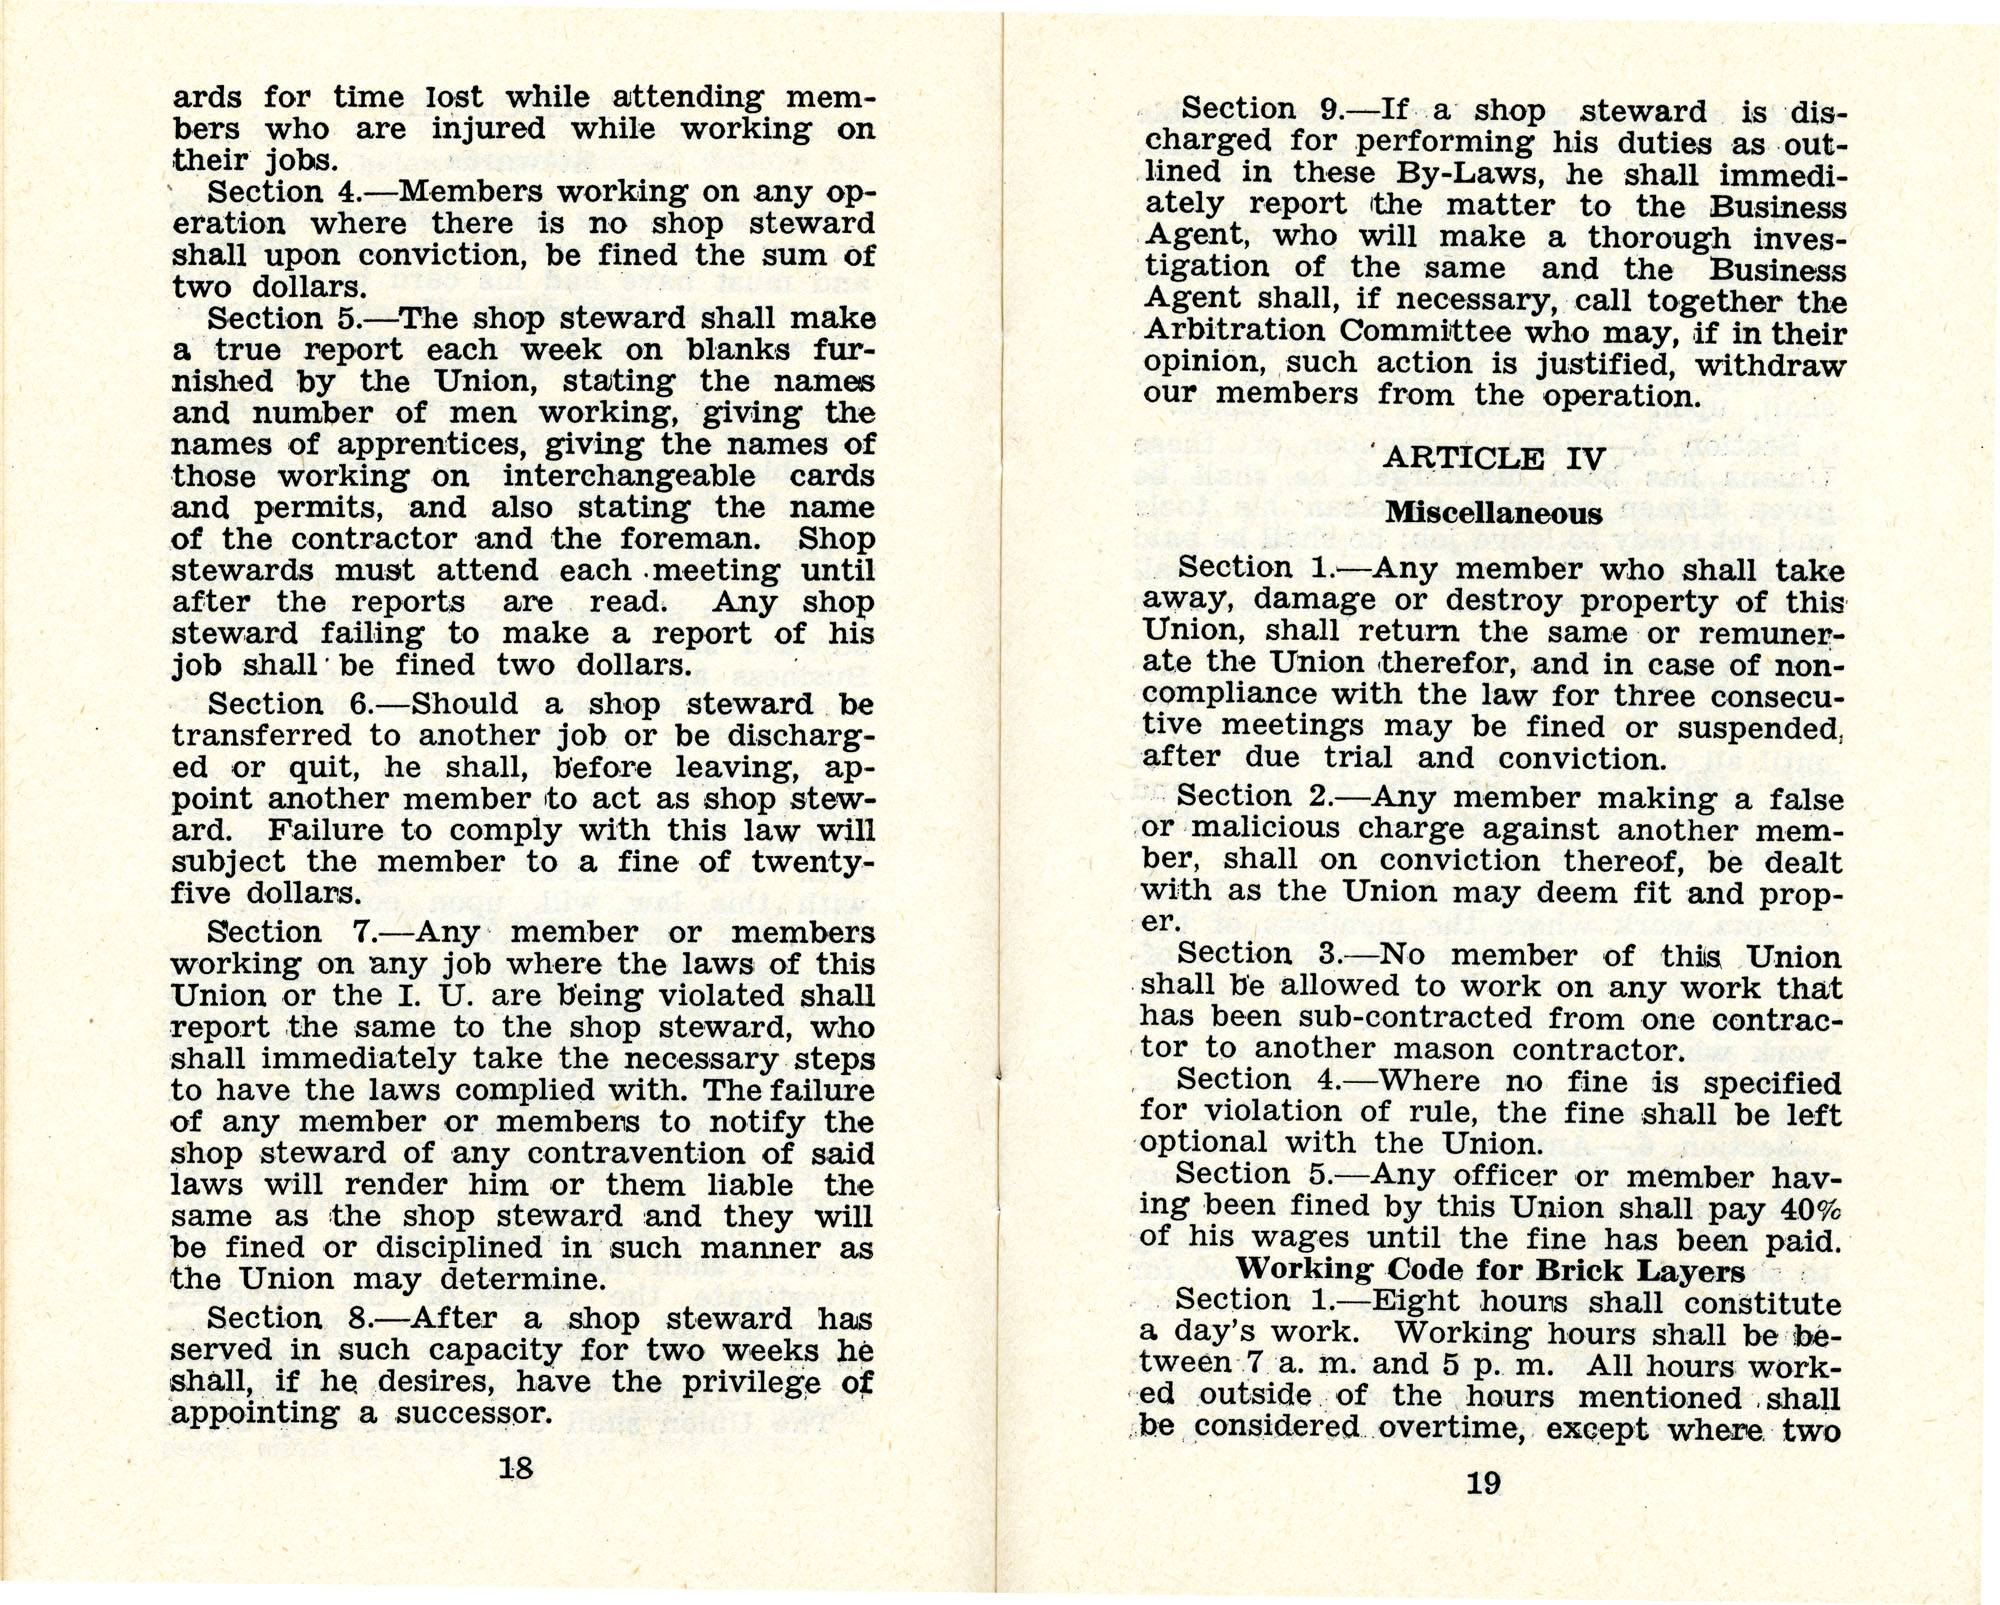 Constitution and by-laws of unions no.1 and 10, Page 10